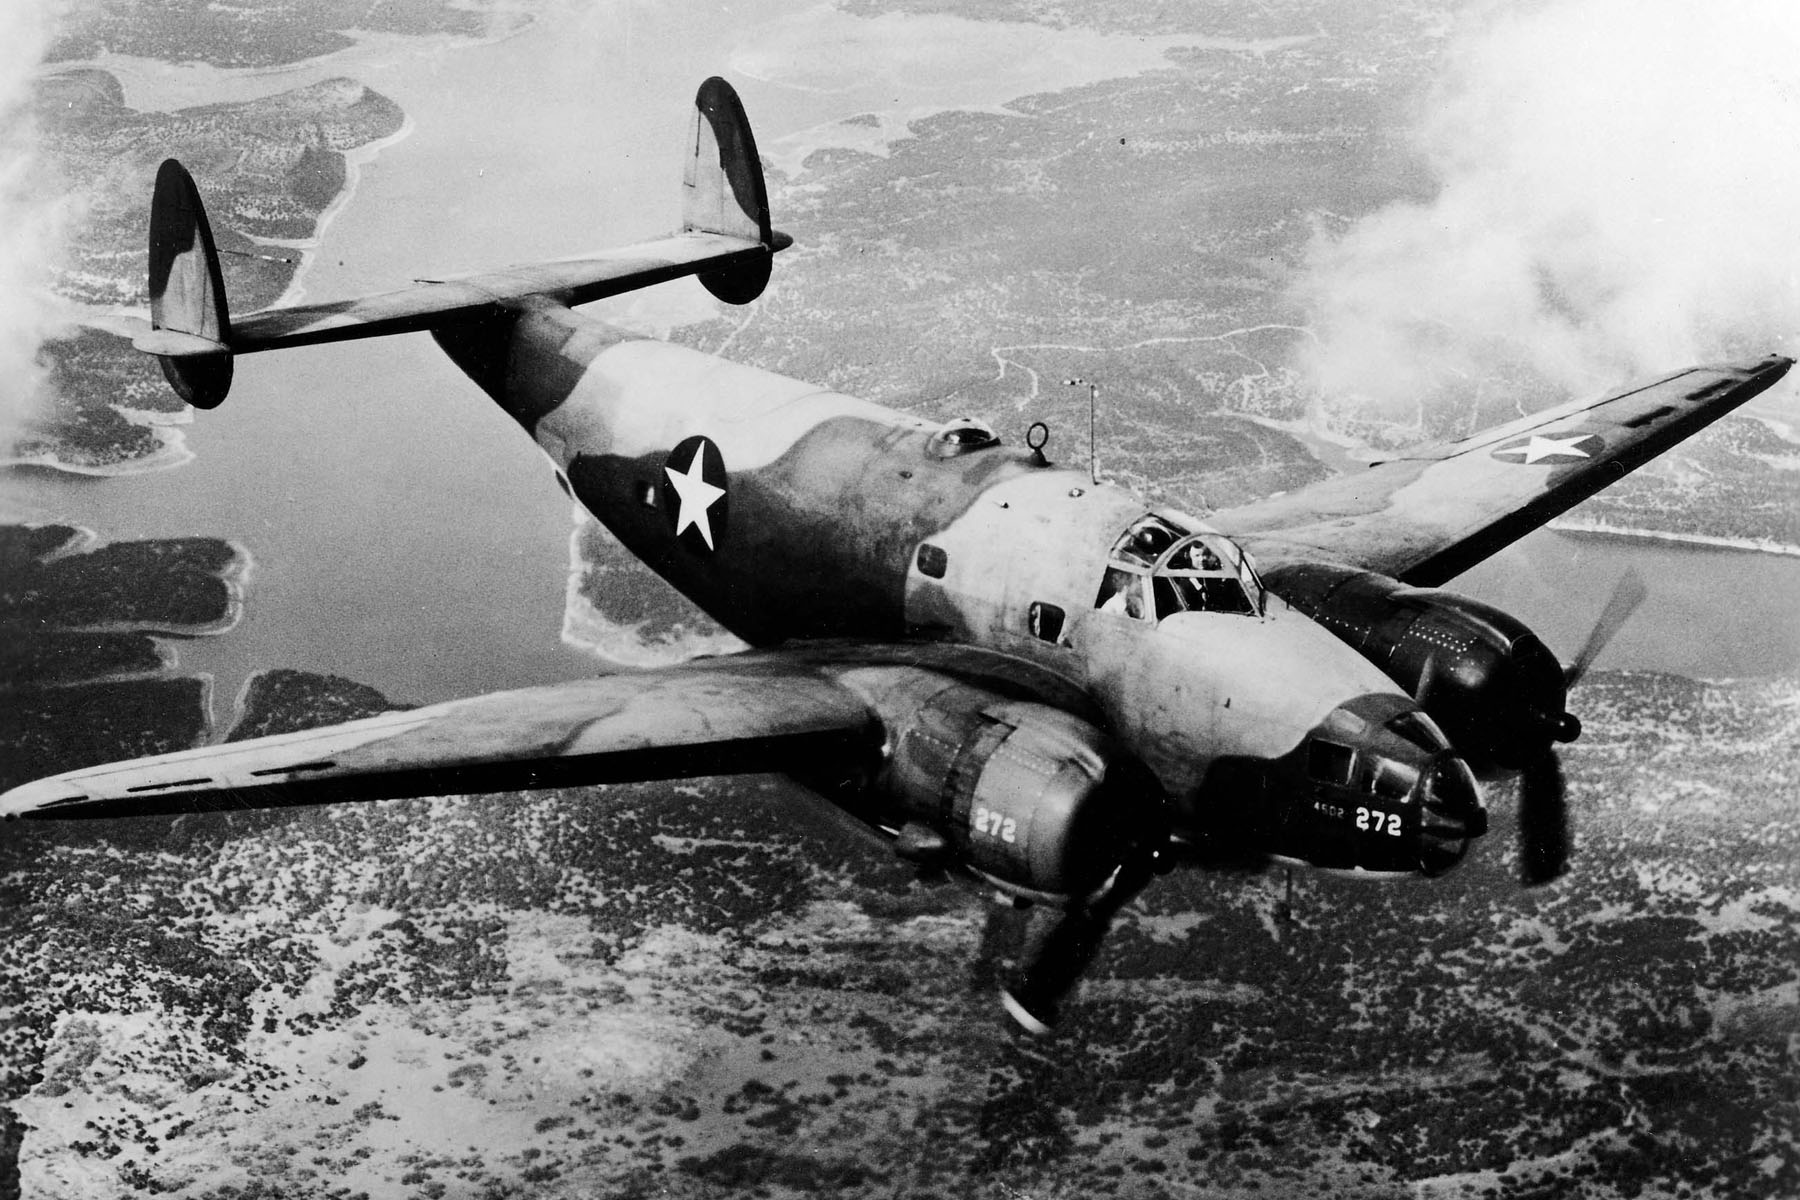 Lockheed Ventura - Wikipedia, the free encyclopedia